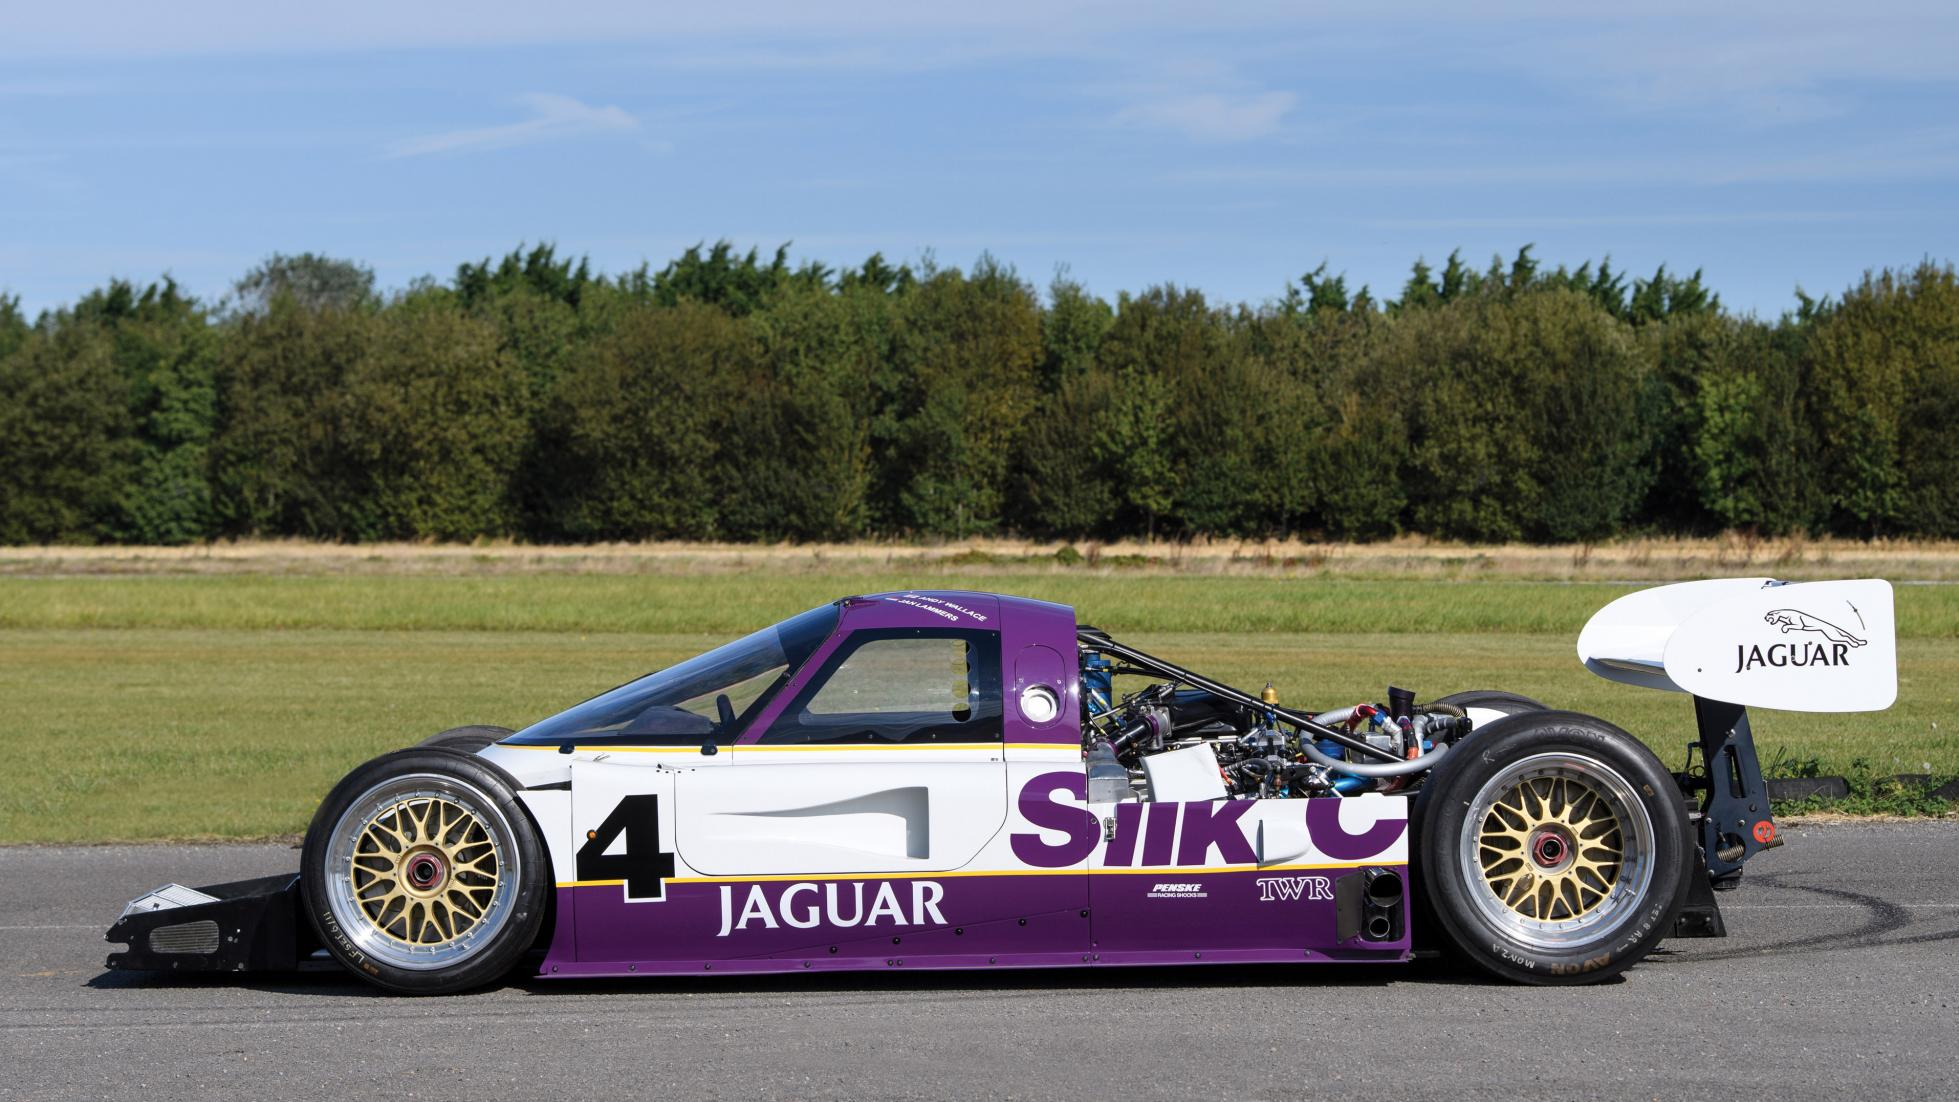 TopGear | This awesome Jaguar endurance racer is going to auction